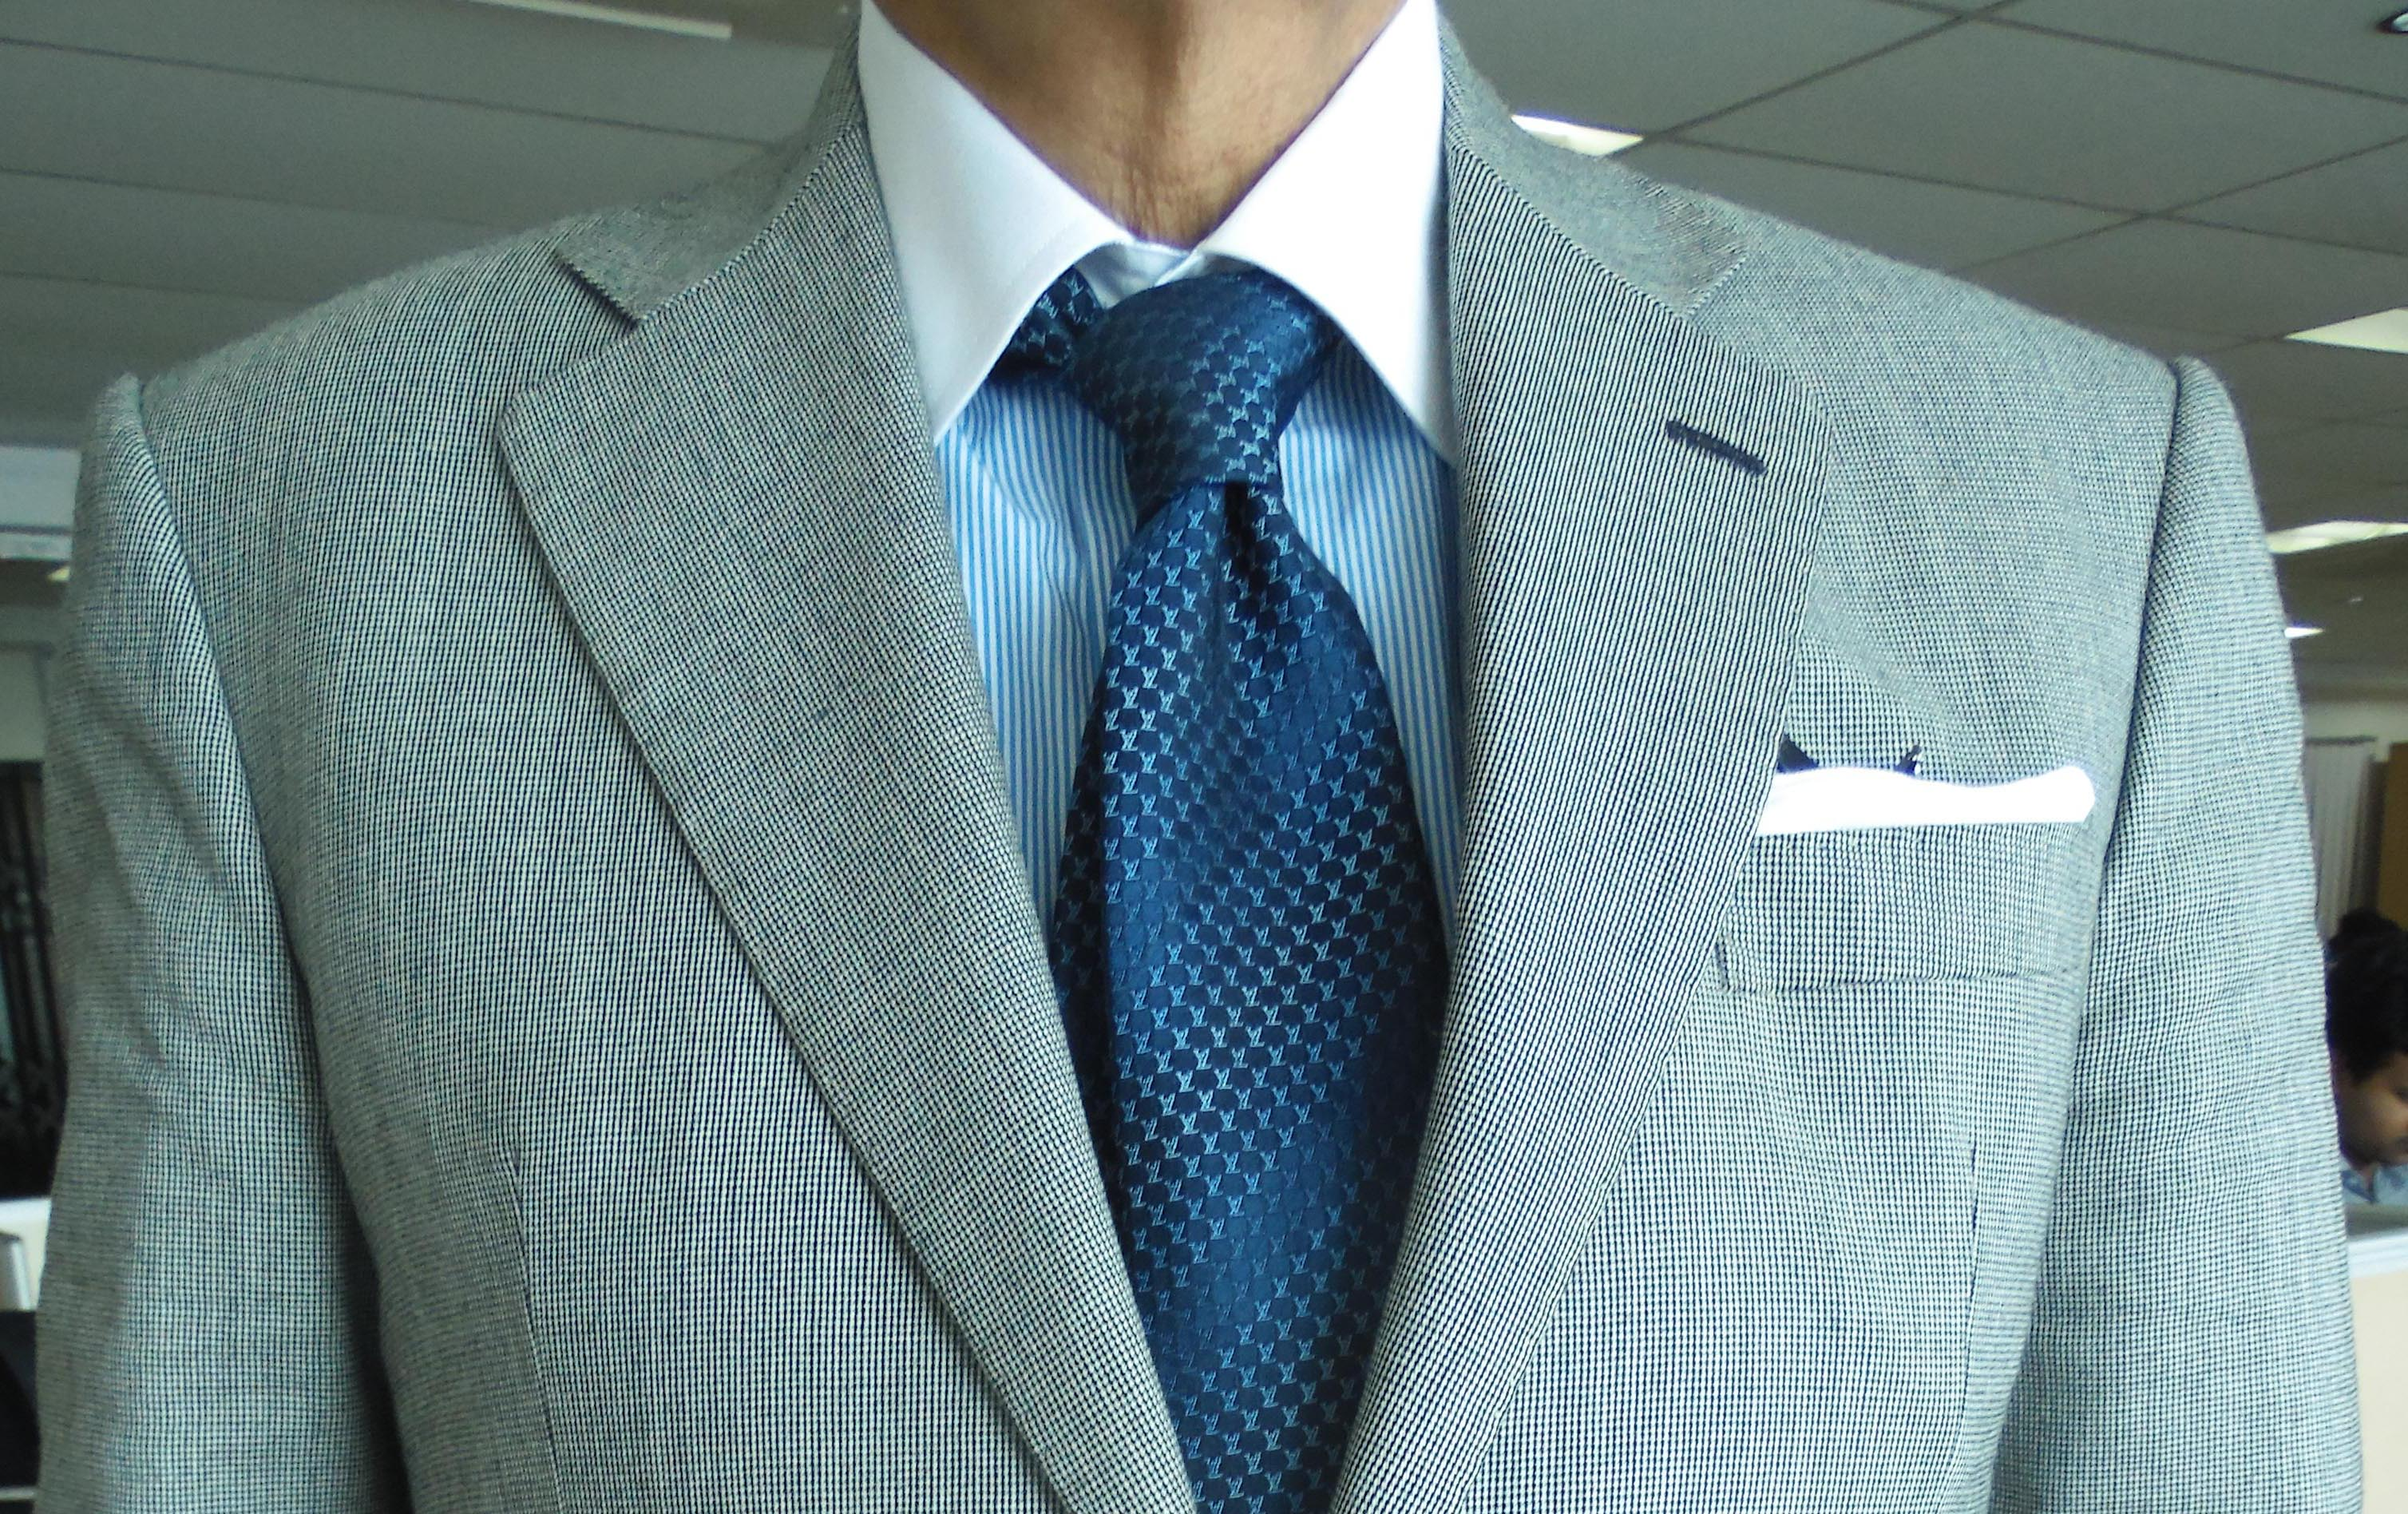 67b3343614a92 ... pocket square light gray suit, blue candy stripe contrast collar shirt,  blue silk tie, white